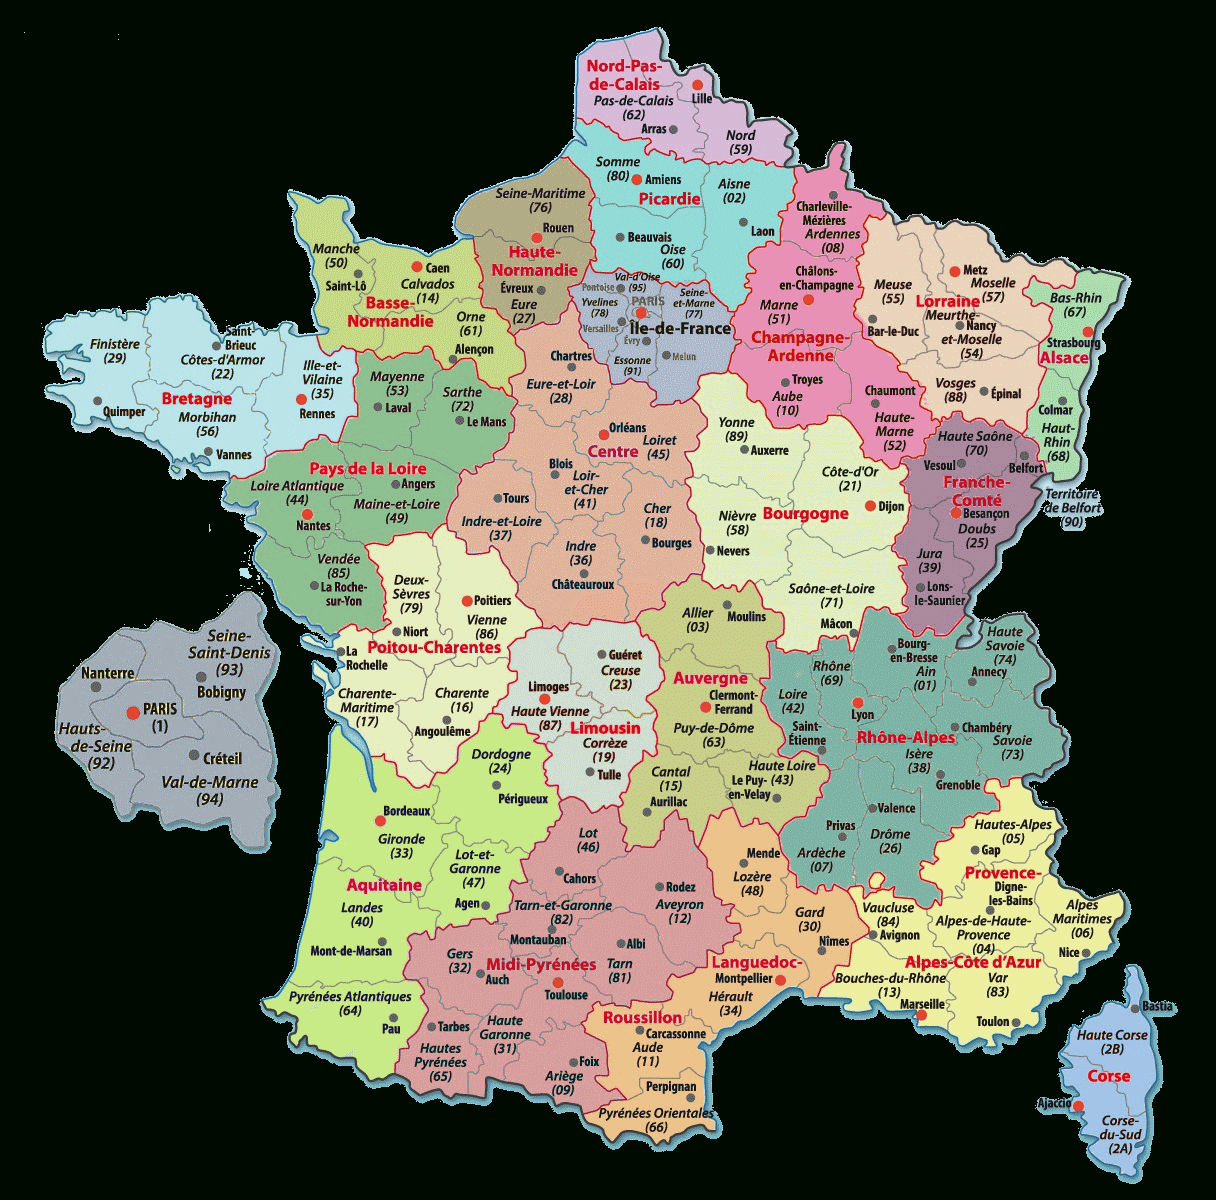 Carte De France Departements : Carte Des Départements De France destiné Carte Numero Departement